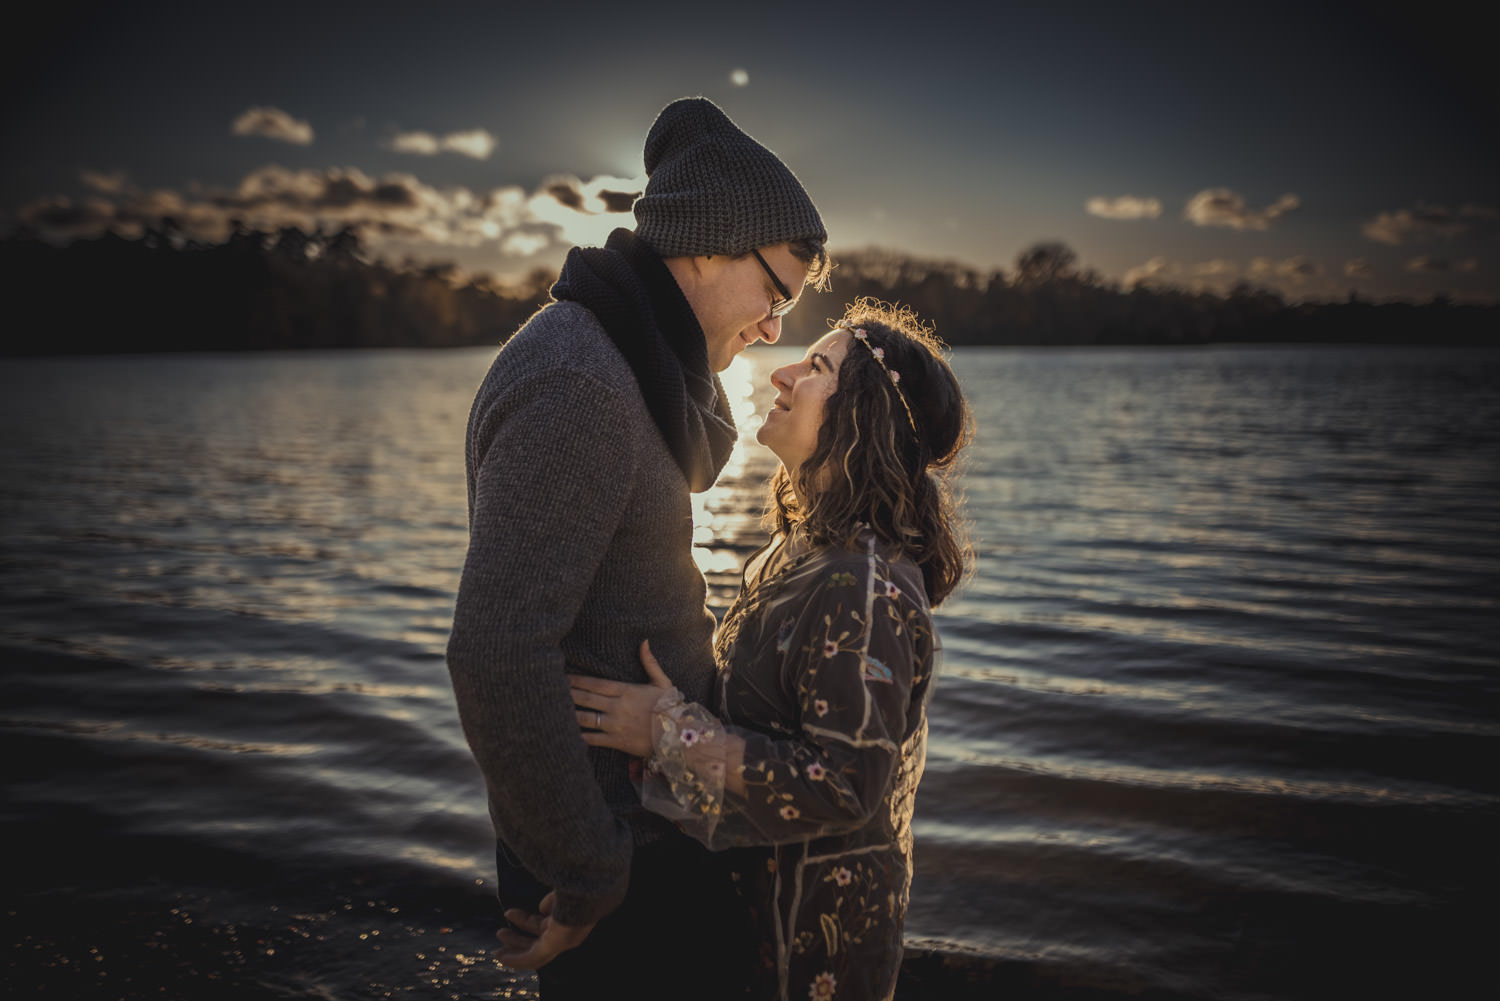 Engagement Photography in Virginia Water Lake